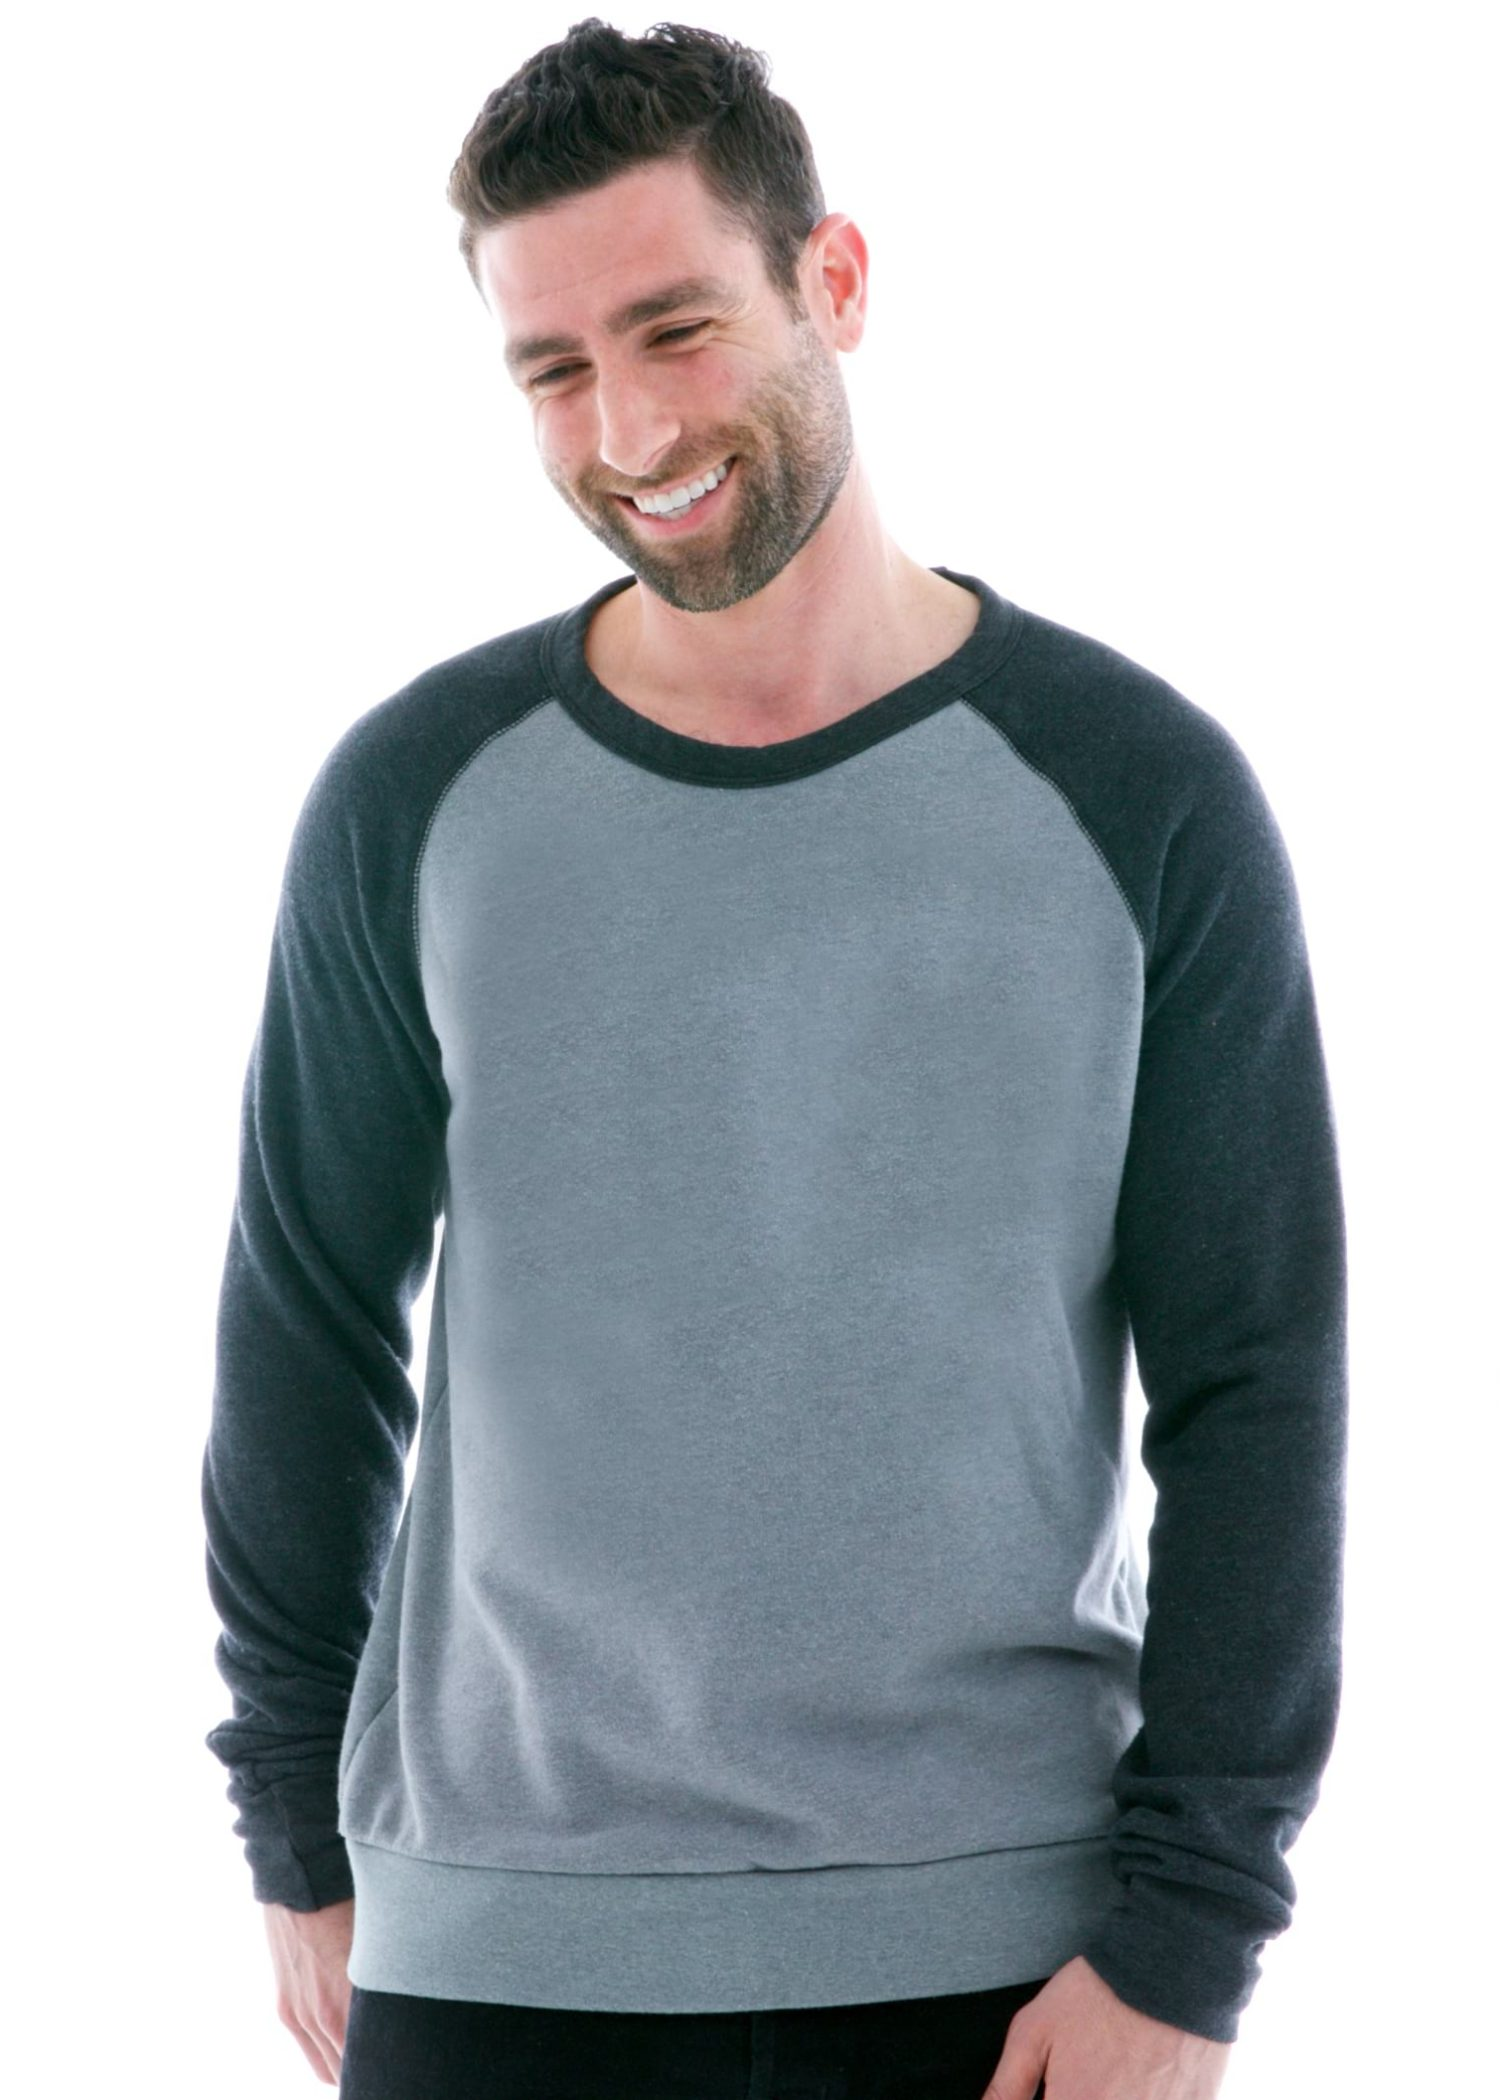 Contrast Sleeve Old School Long Sleeve Raglan T-Shirt Front View